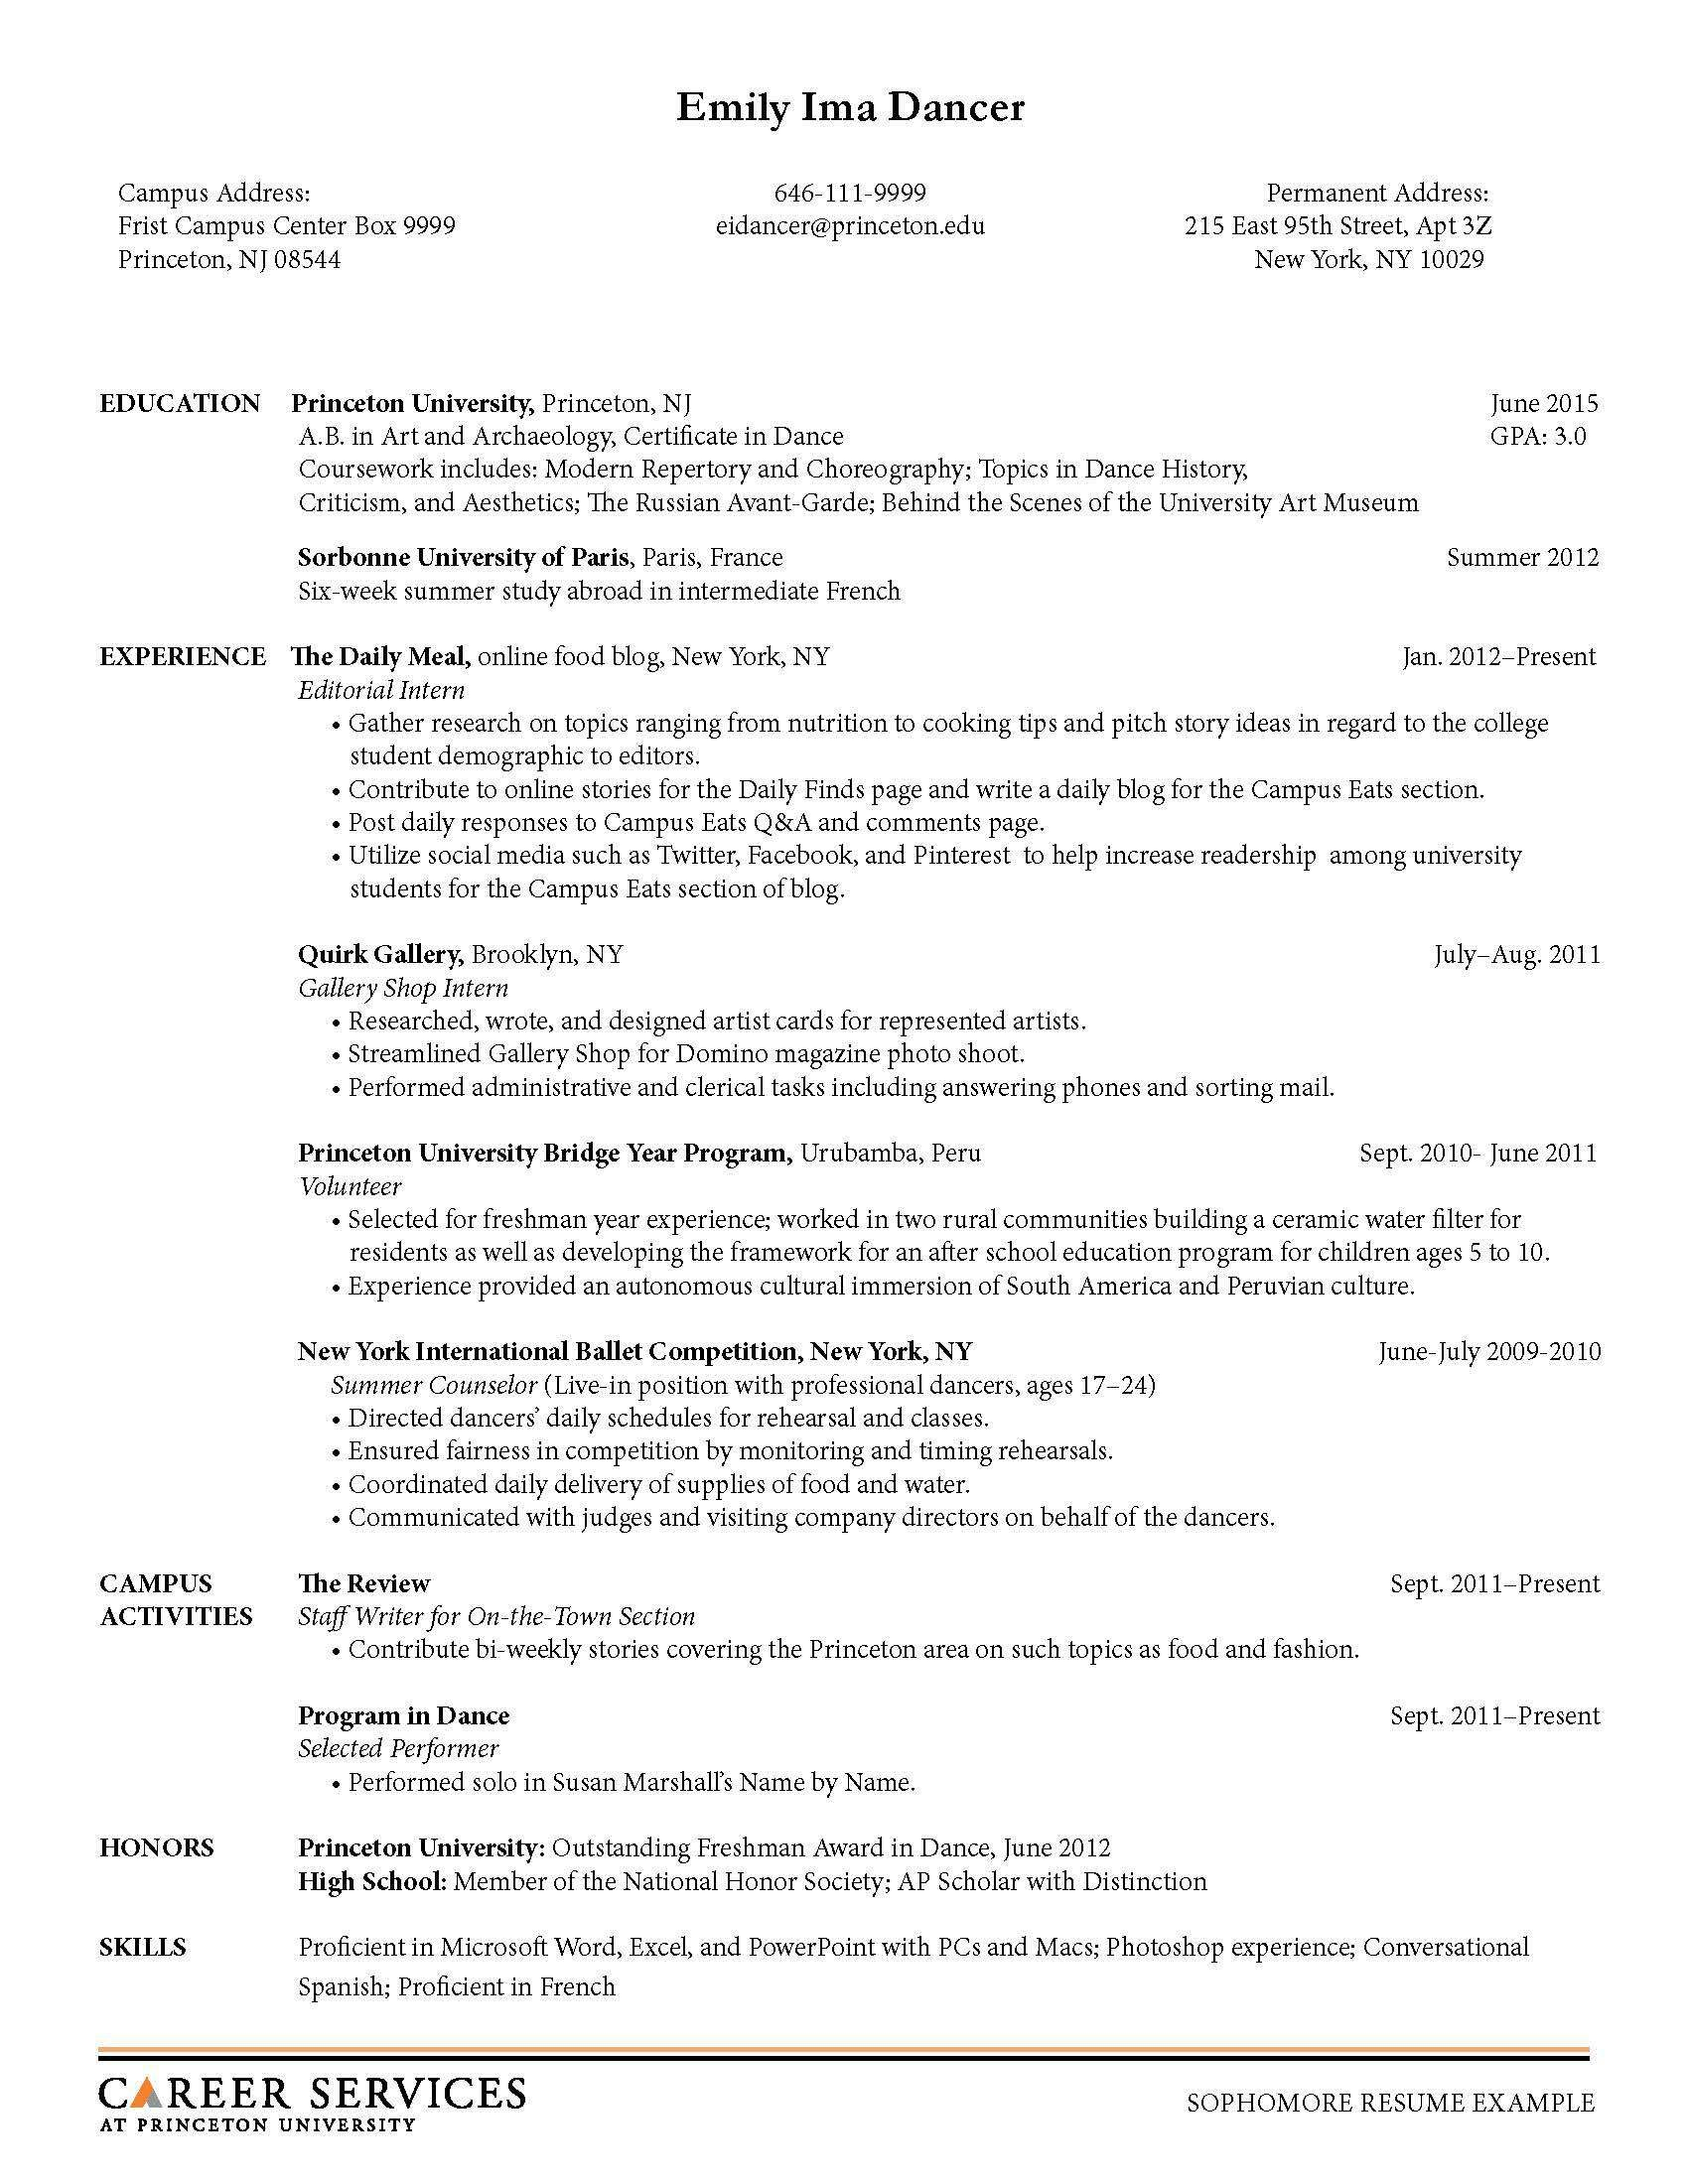 Marketing Intern Resume Impressive Cover Letterstudents For Marketing Summer Internshipuse These